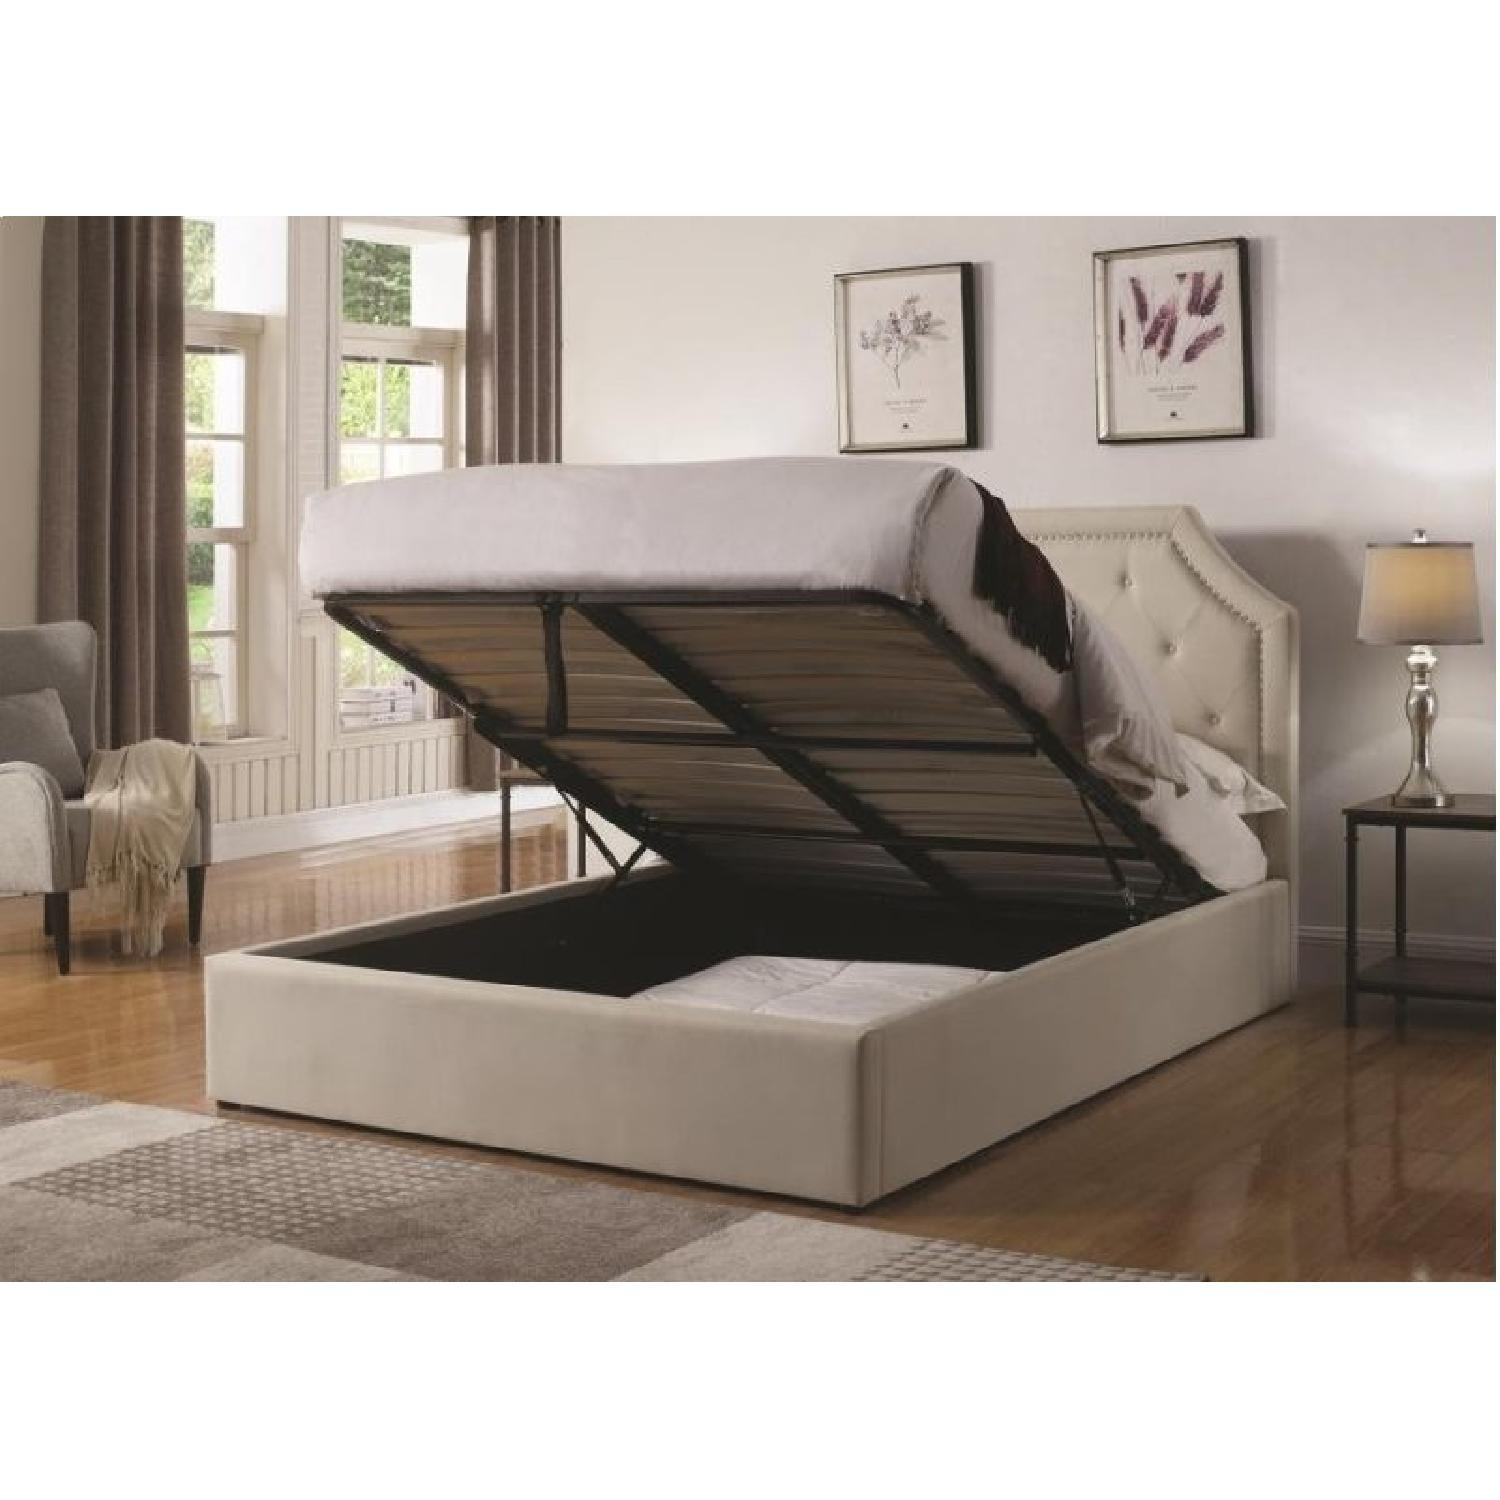 King Size Bed in Beige Fabric Upholstery w/ Lift-Up Storage